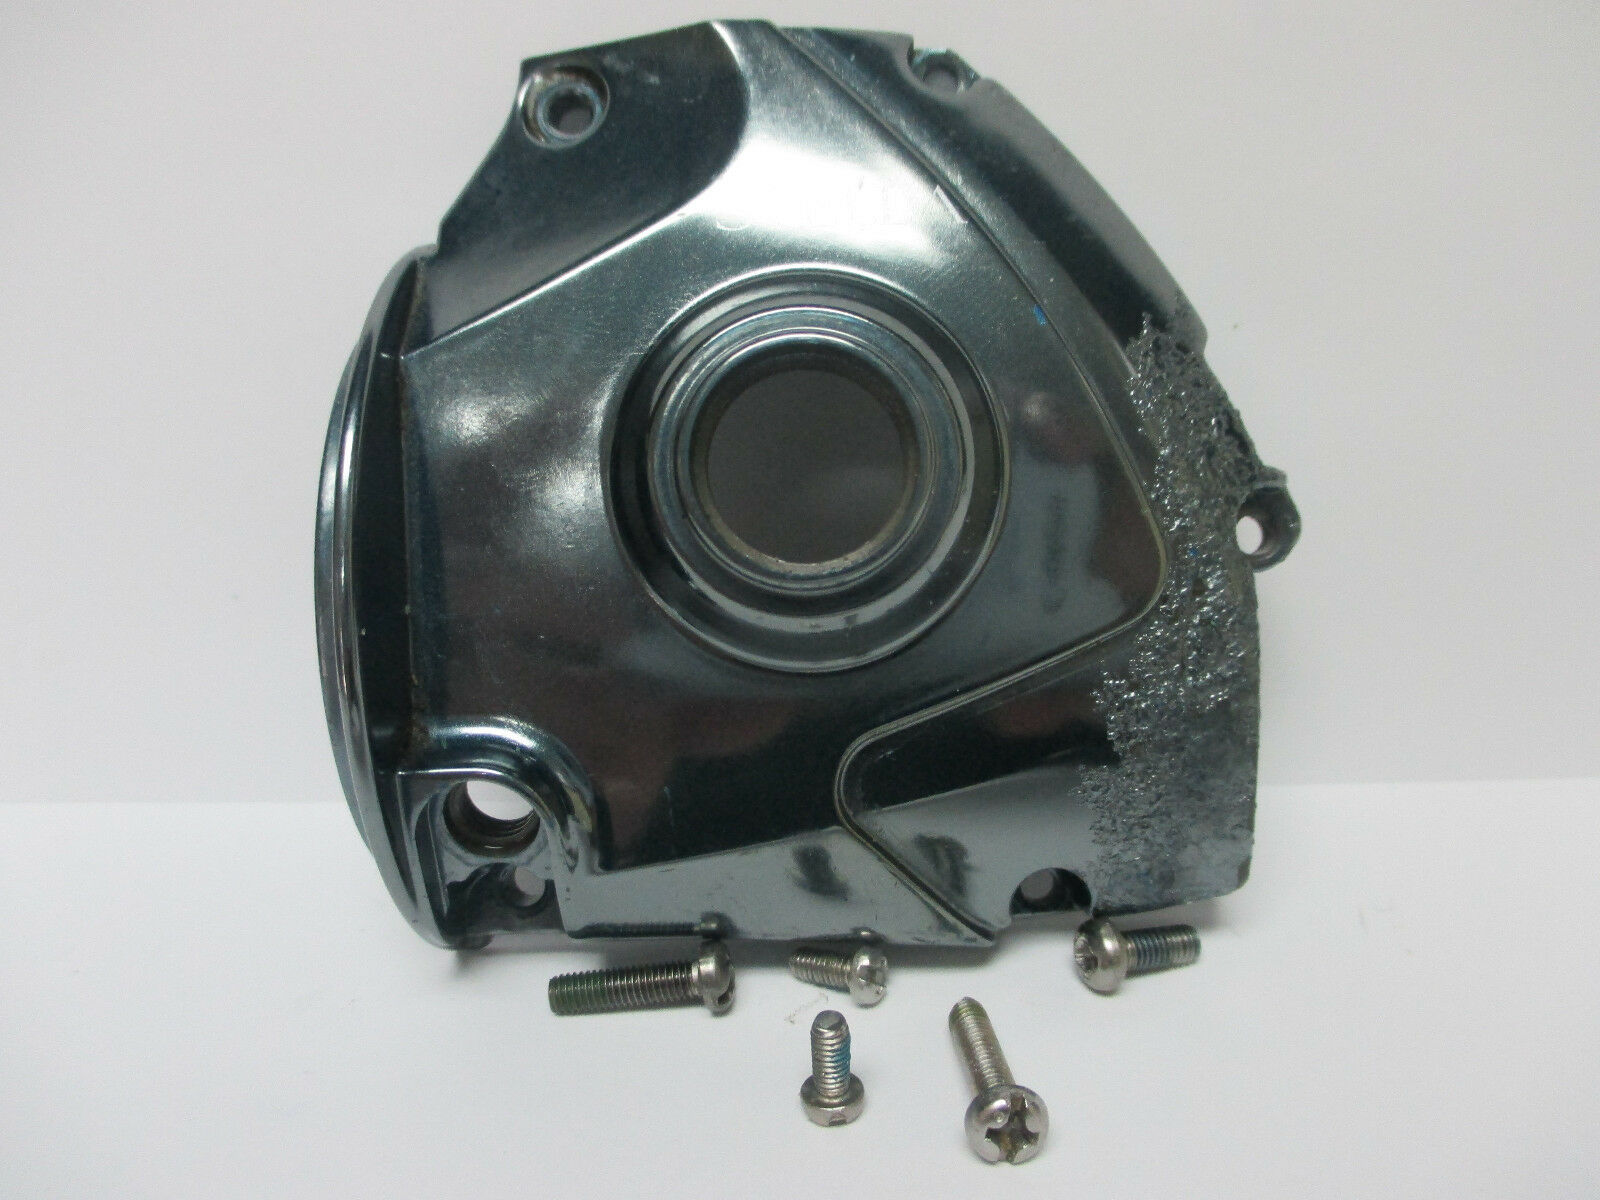 USED SHIMANO SPINNING REEL PART - Stella 20000 FA - Body Side Cover  B